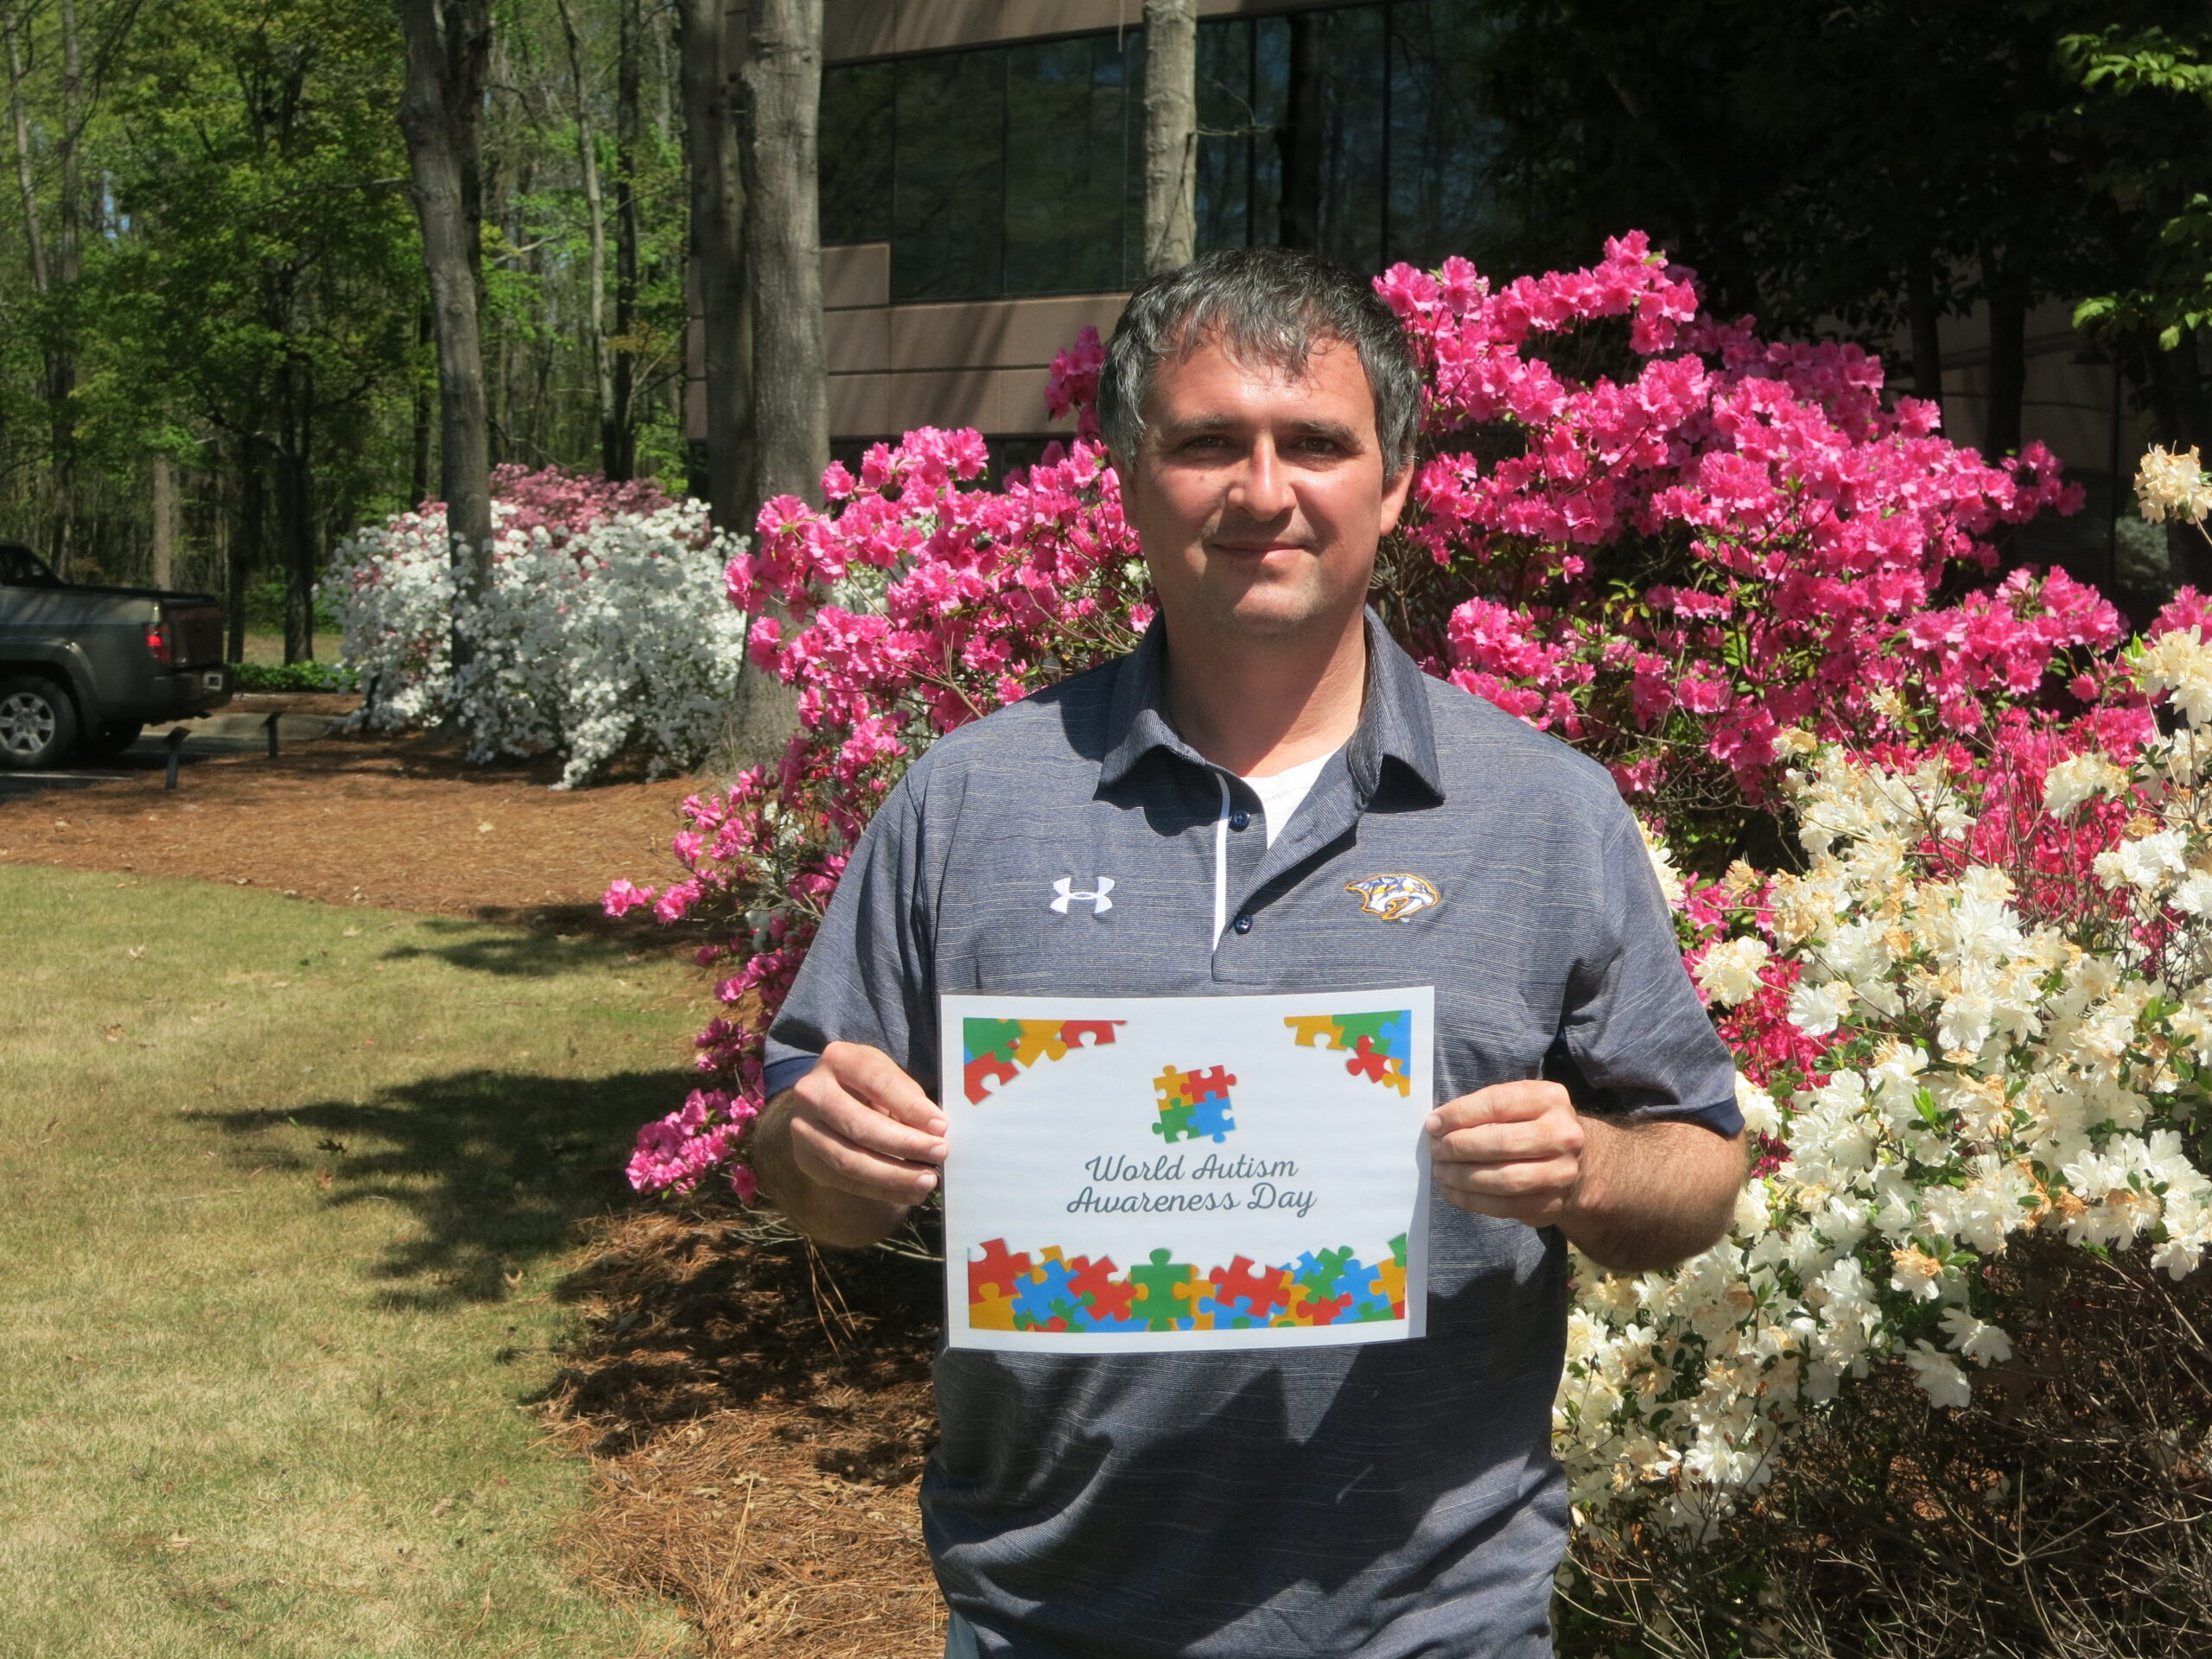 Tec-Masters' employee Andrew Isbell holding a sign of encouragement for our Autism walk.